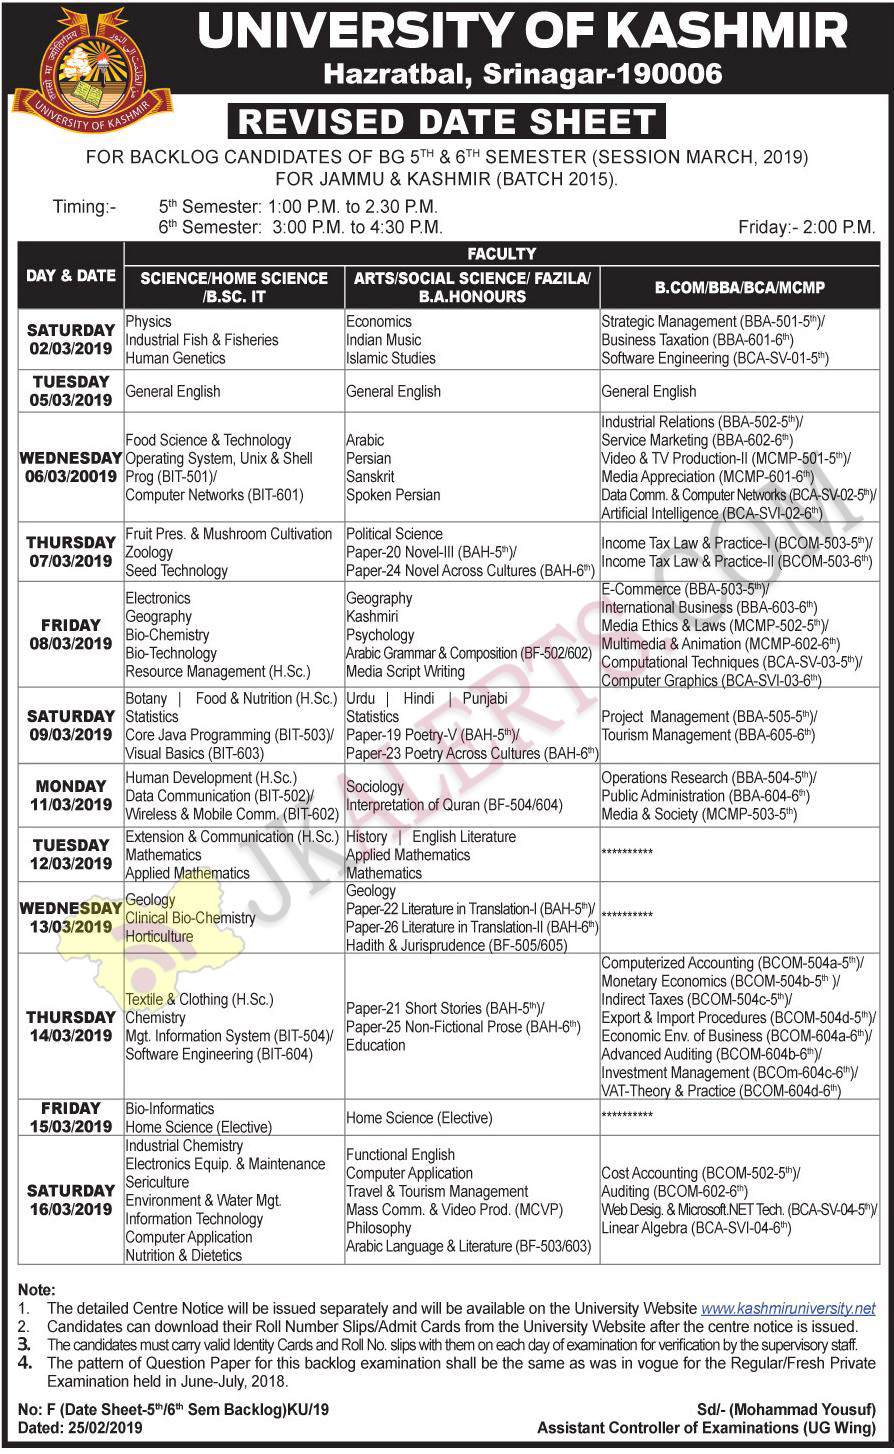 University of Kashmir Revised Date Sheet March Session 2019